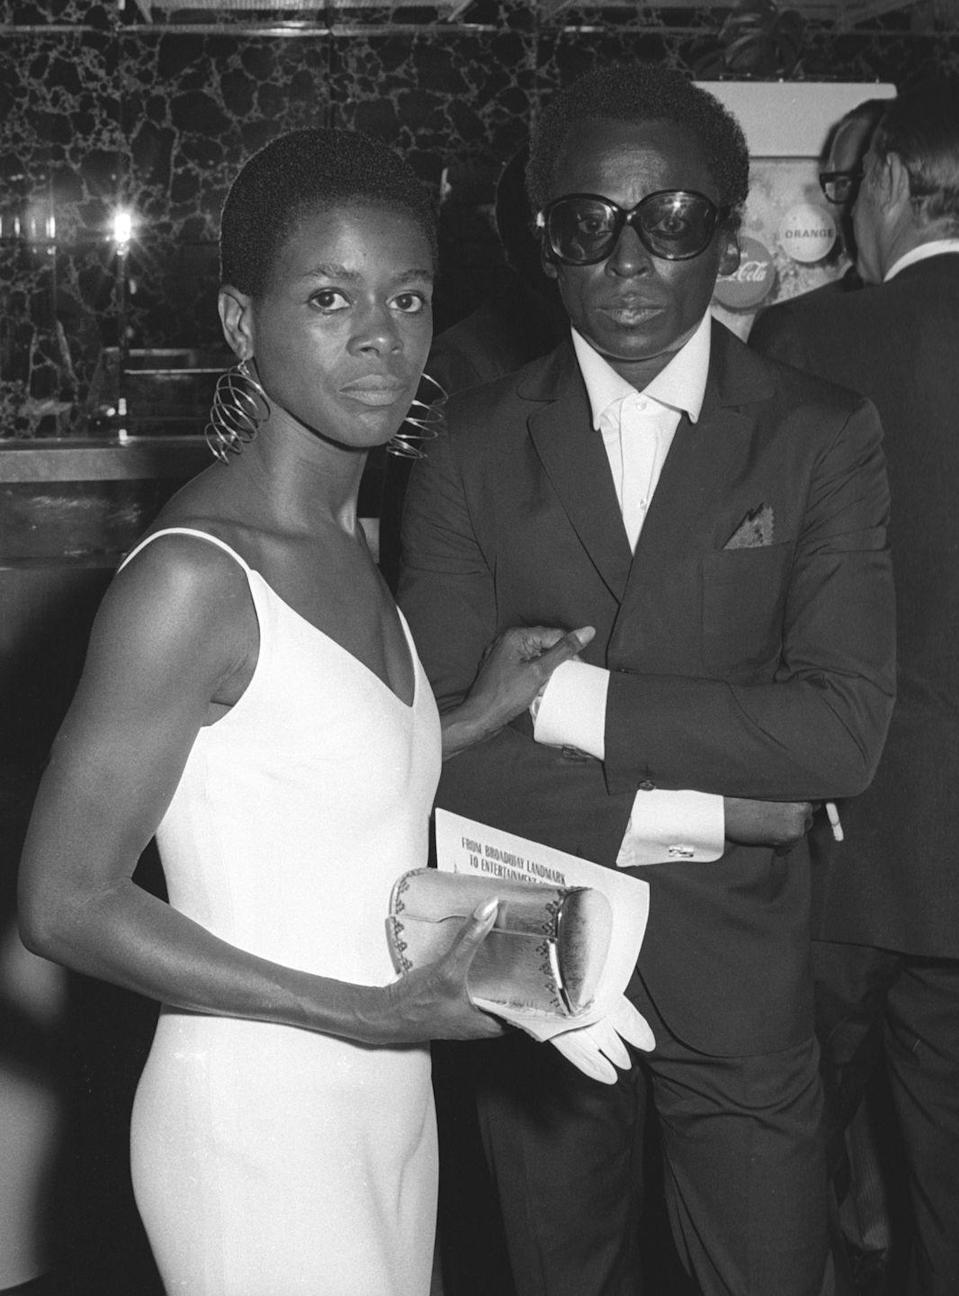 <p>Cicely Tyson's love affair with Miles Davis is legendary, and in spite of their tumultuous history, she considered him the love of her life up until her death. Here she is with Davis at the premiere of <em>The Heart is a Lonely Hunter</em>, wearing a slinky white gown and rocking her iconic TWA (Teeny Weeny Afro)</p>